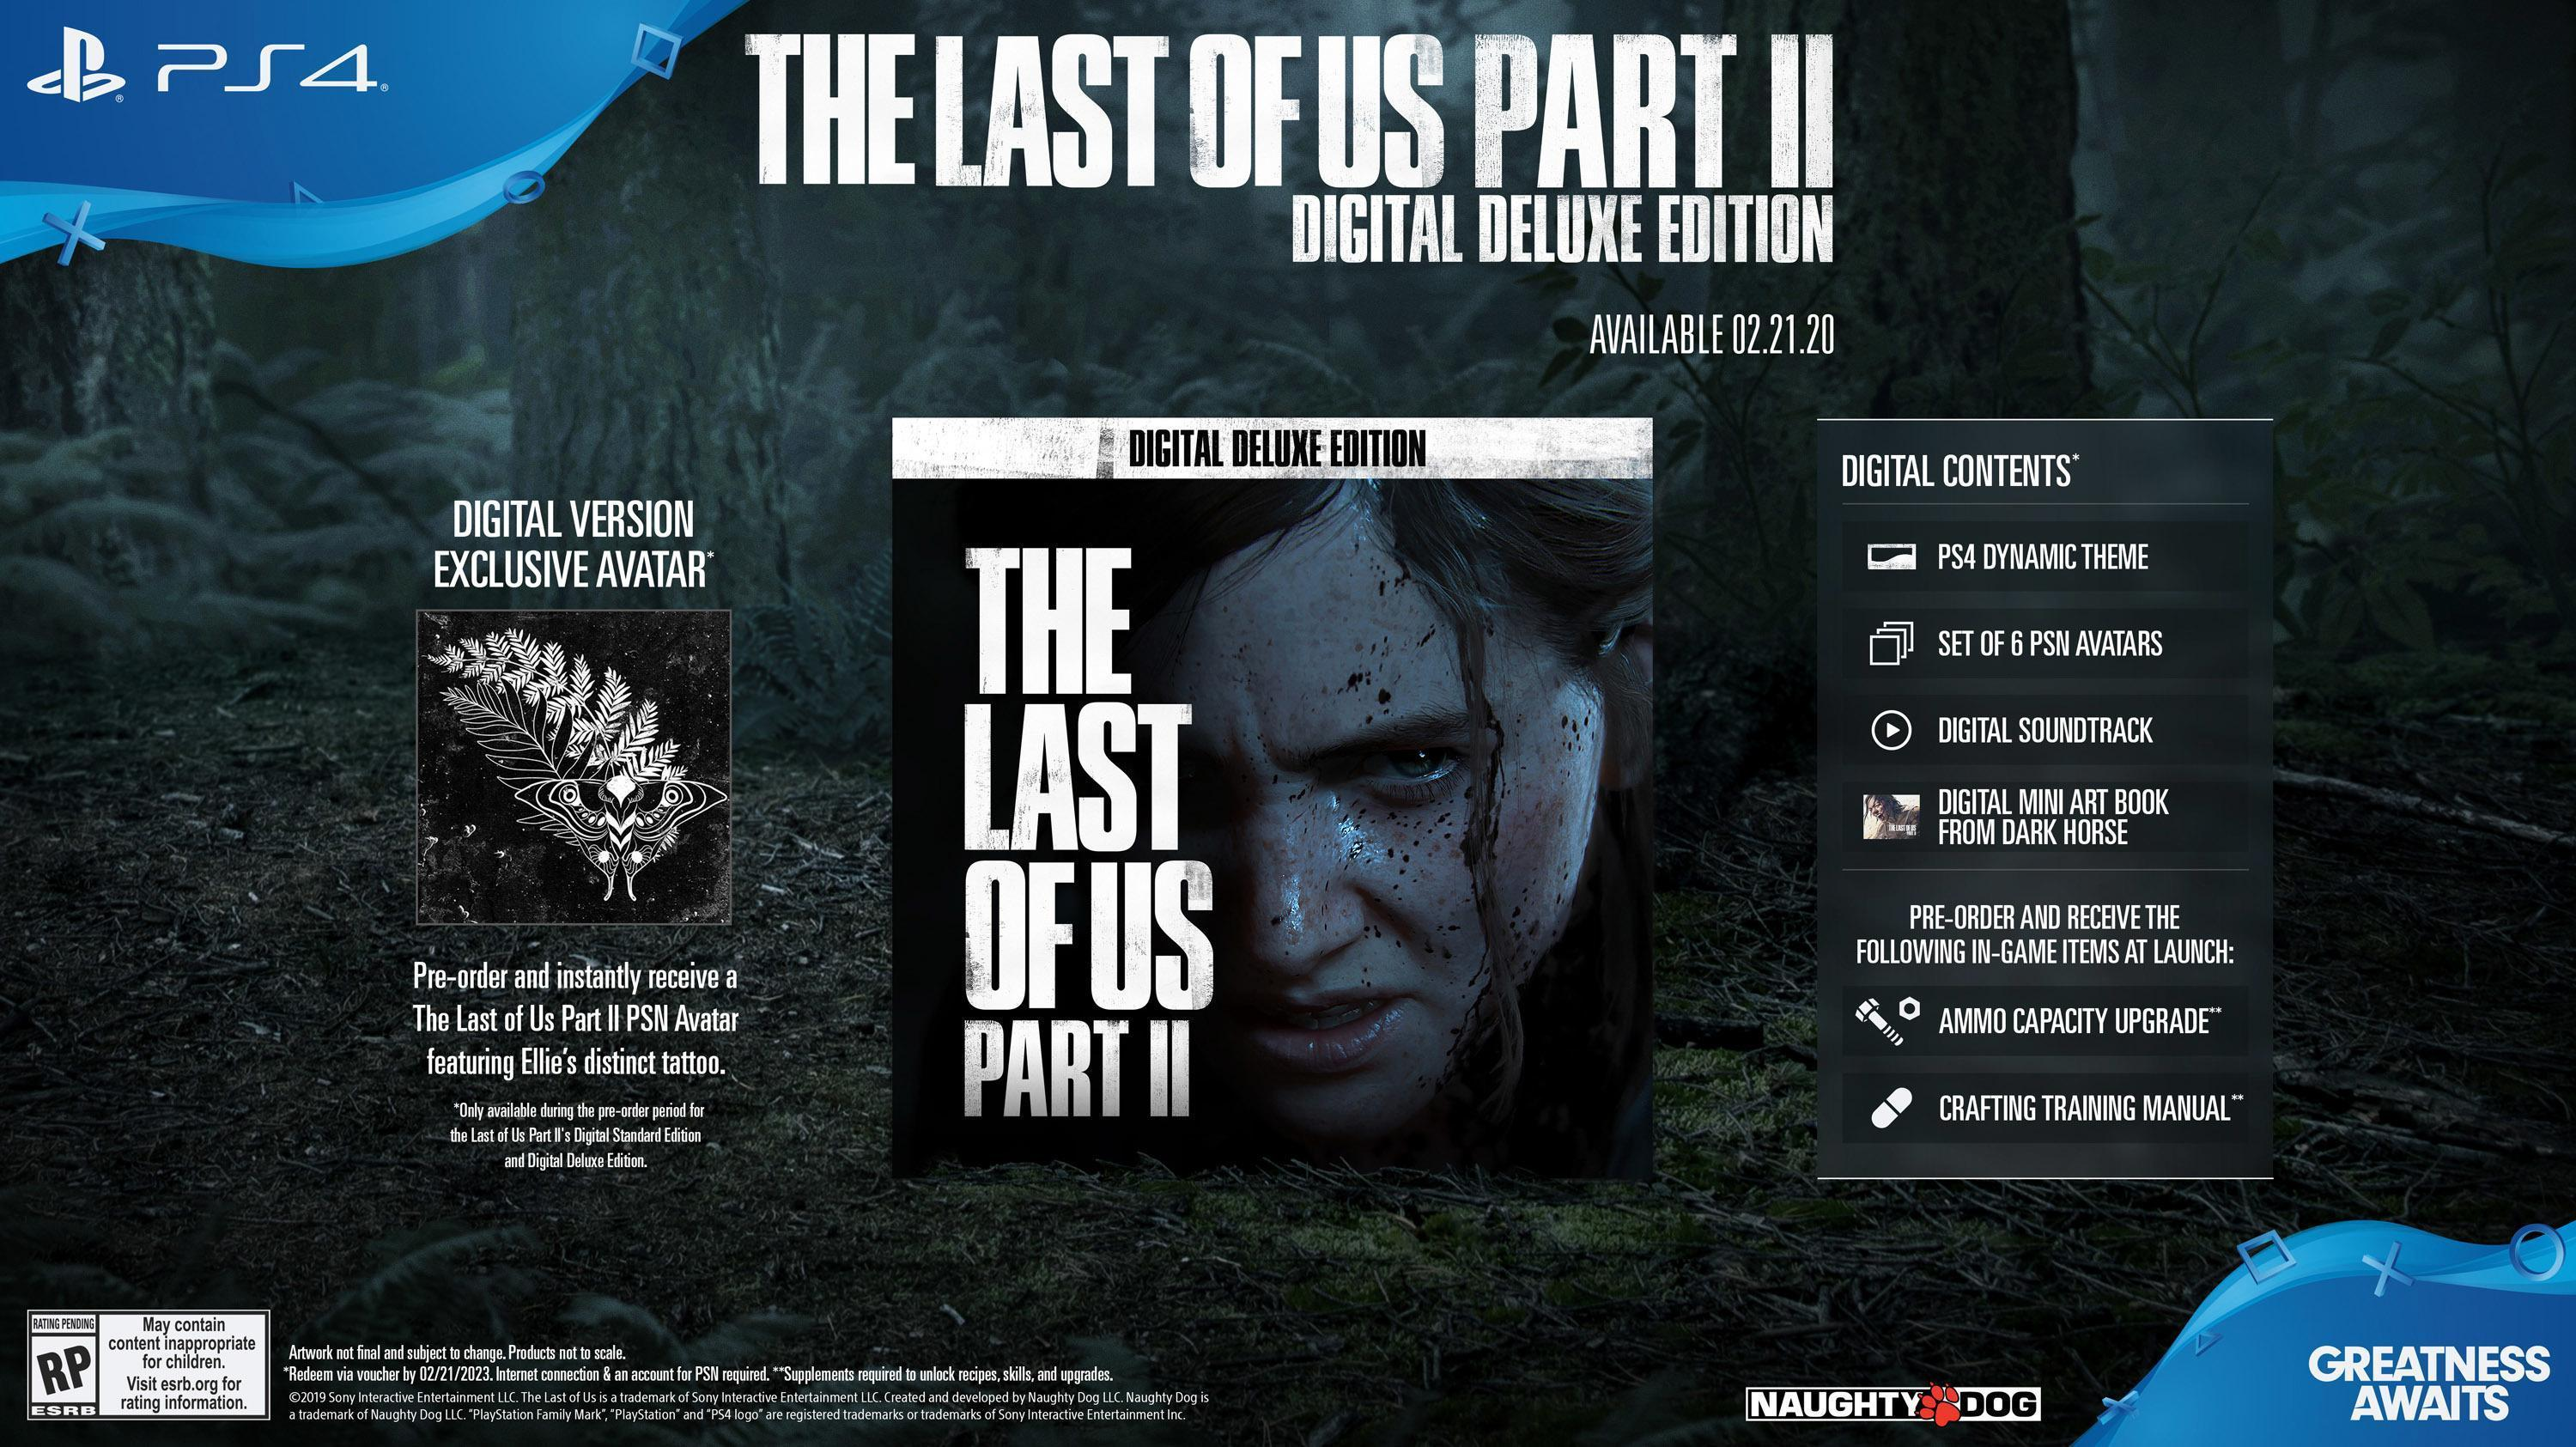 https://www.gamesatlas.com/images/the-last-of-us-2/the-last-of-us-2-digital-deluxe-edition.jpg